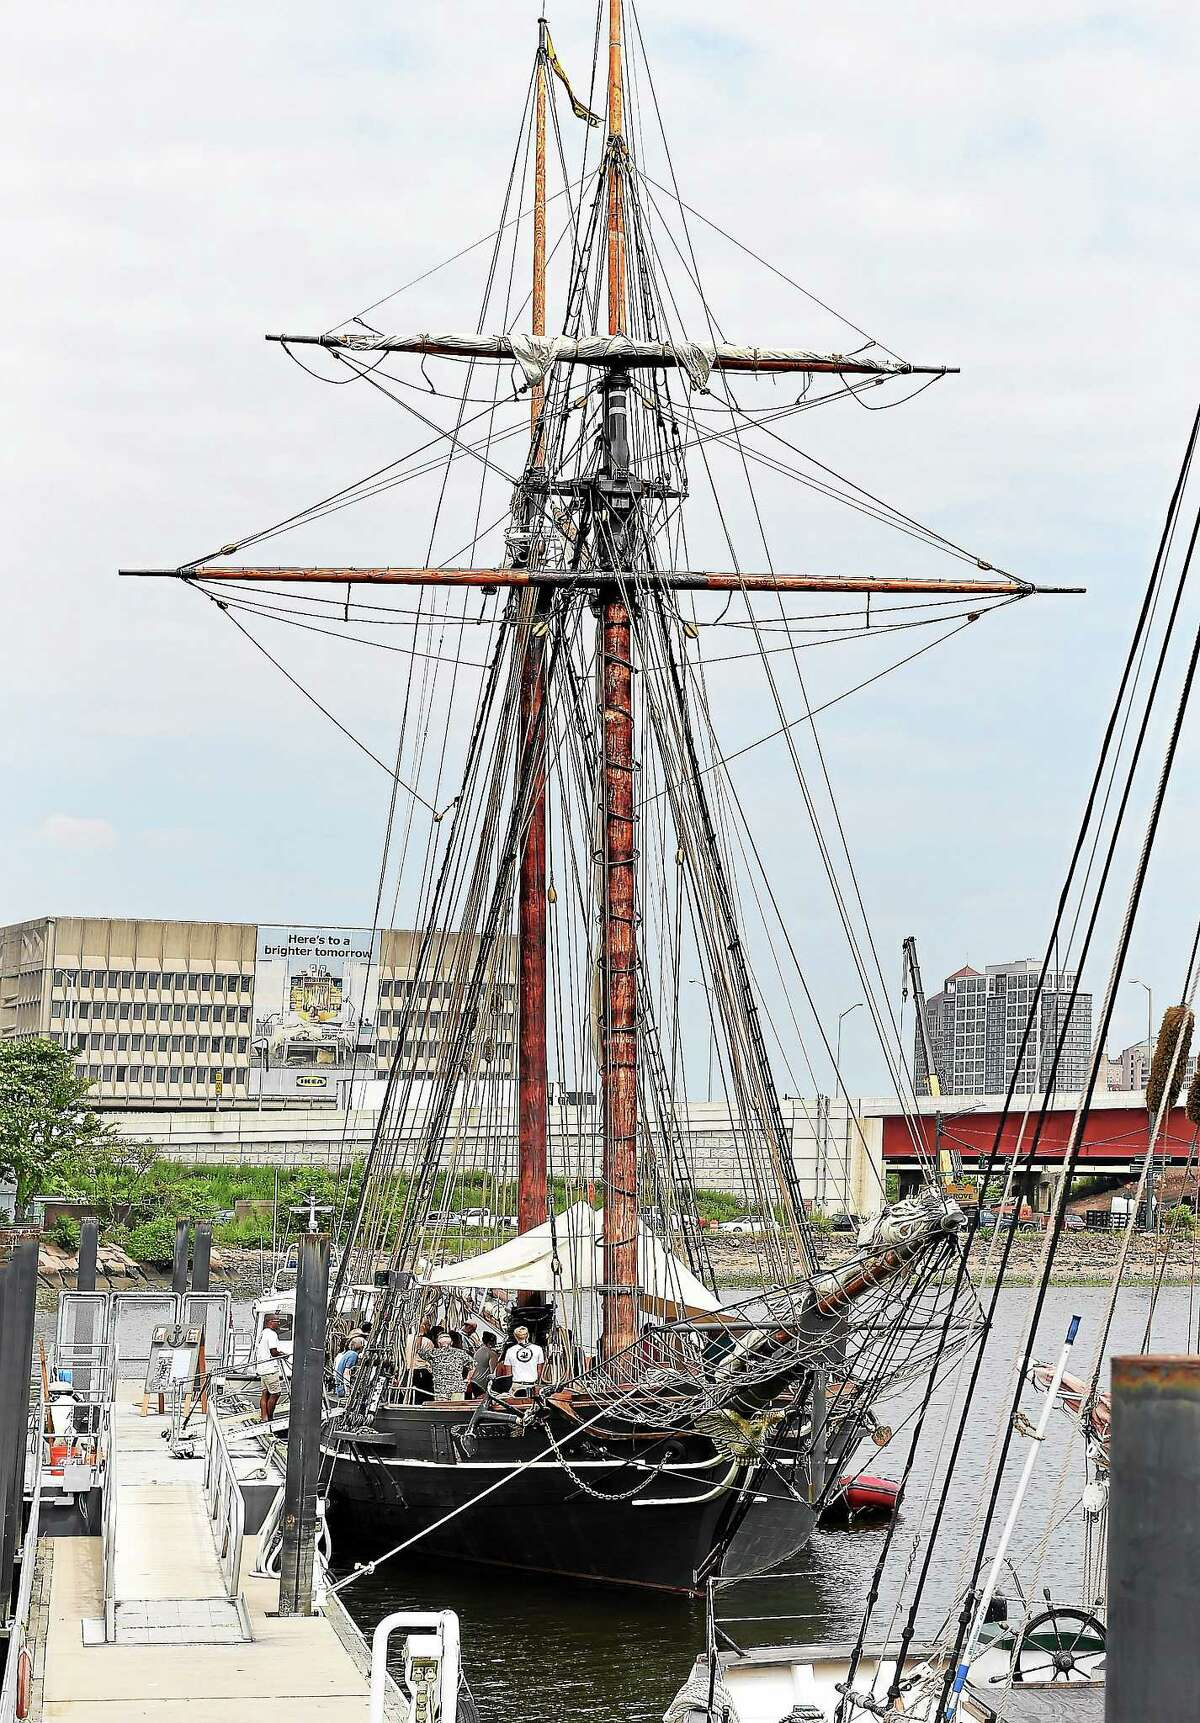 The Amistad, docked in New Haven Harbor during the homecoming ceremony. The boat will be in Long Island Sound for most of the summer.